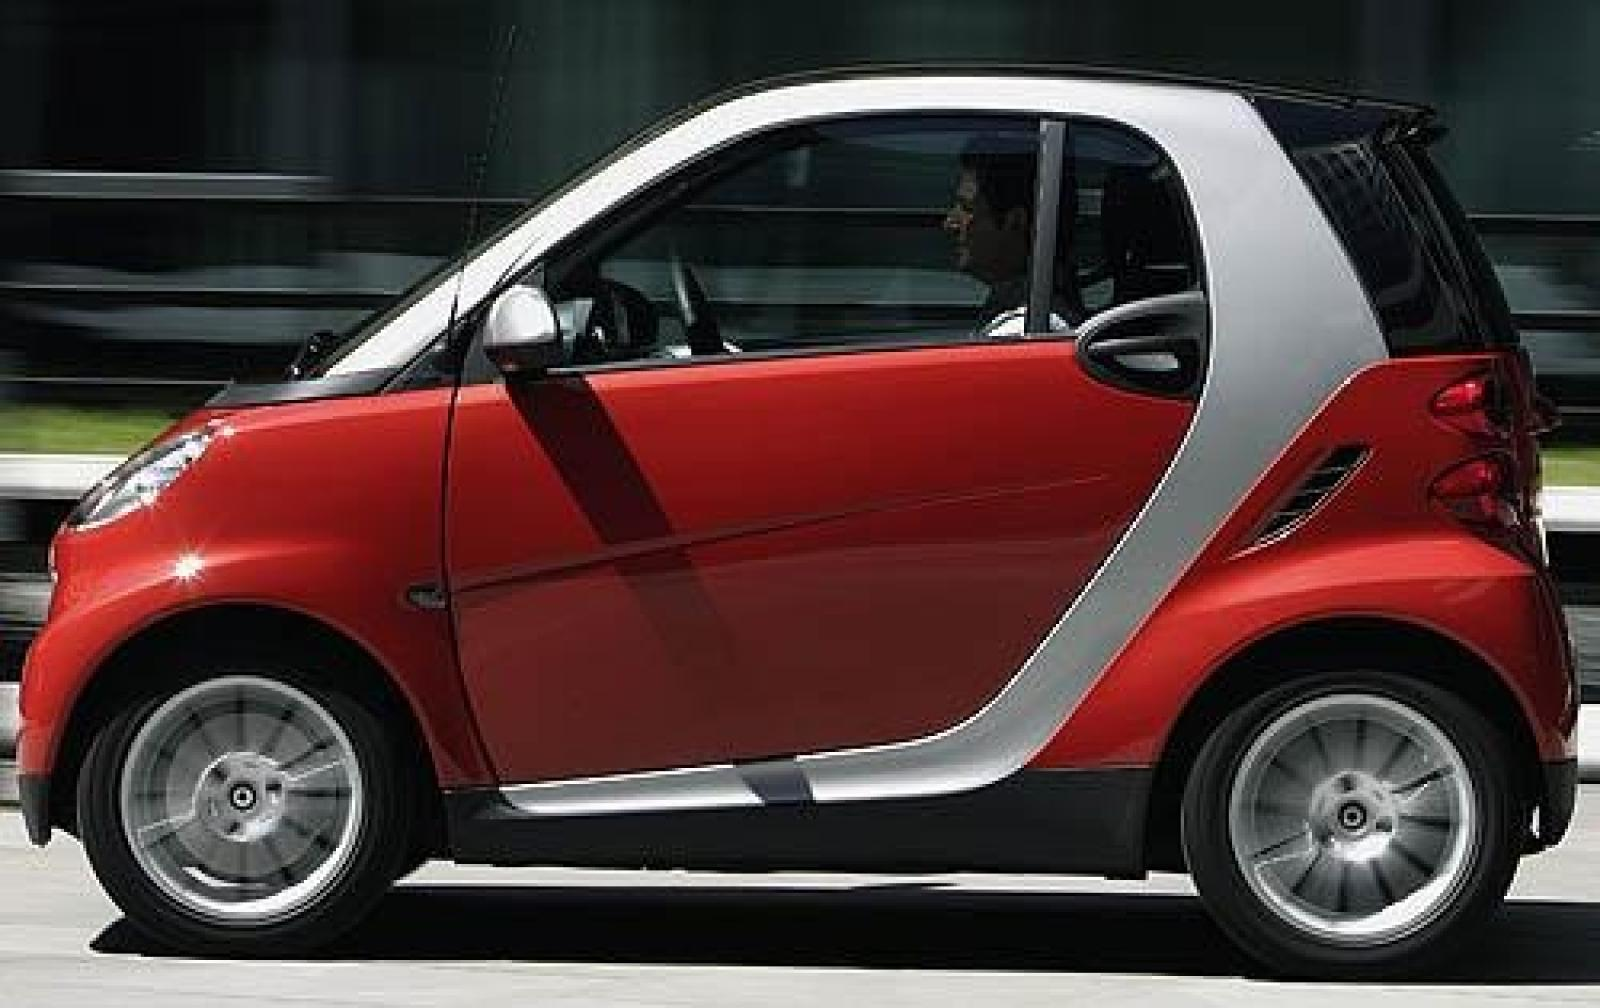 2008 smart fortwo information and photos zombiedrive. Black Bedroom Furniture Sets. Home Design Ideas